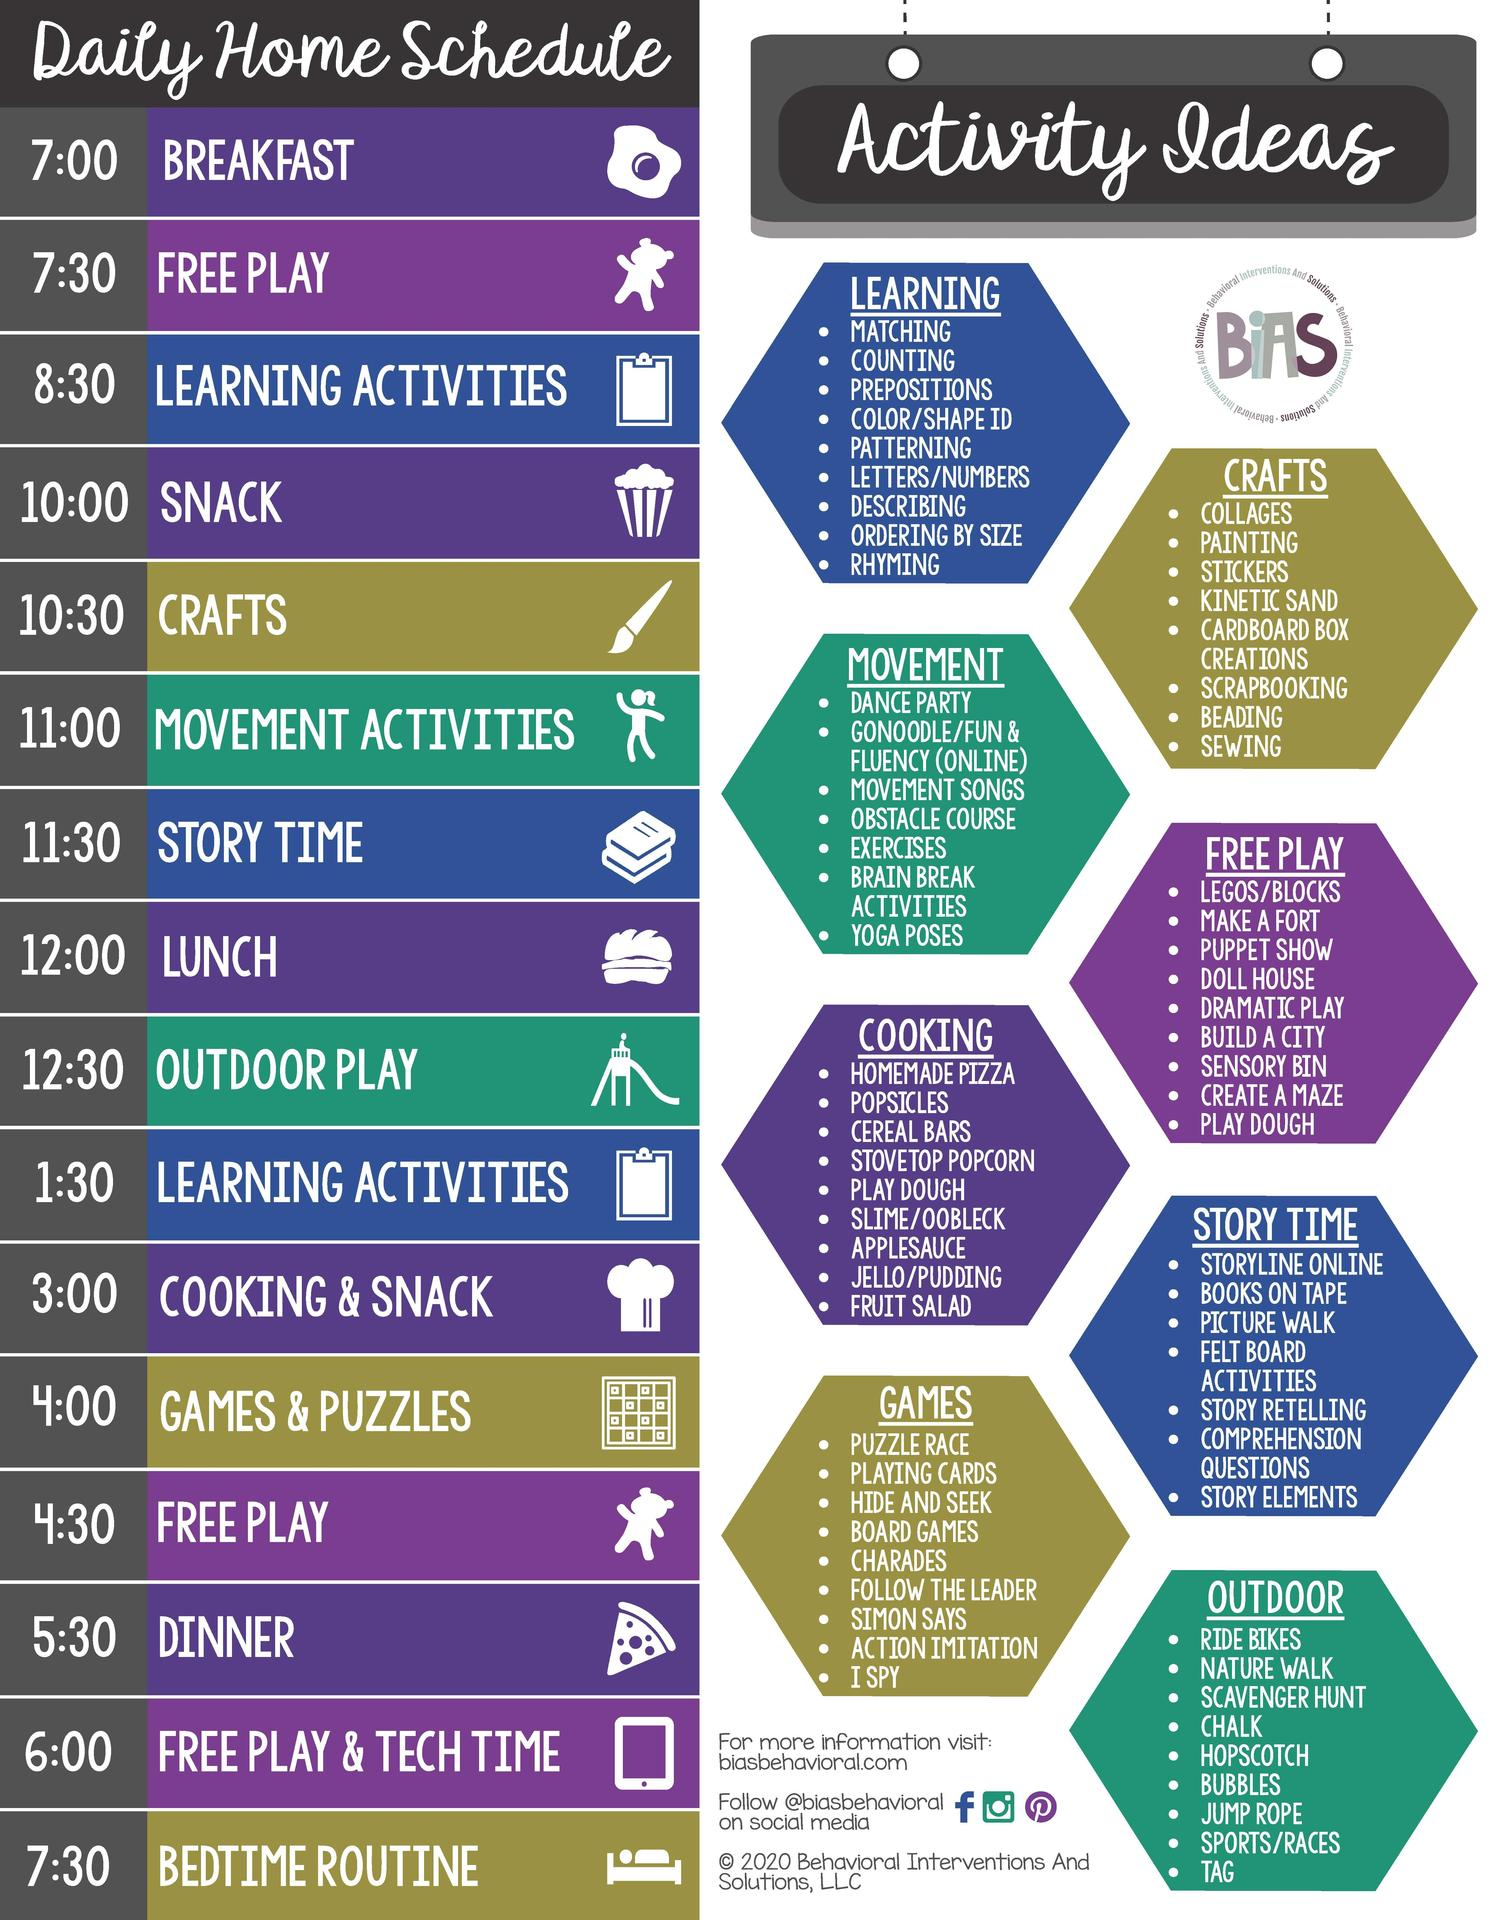 Daily Home Schedule and Activity Ideas